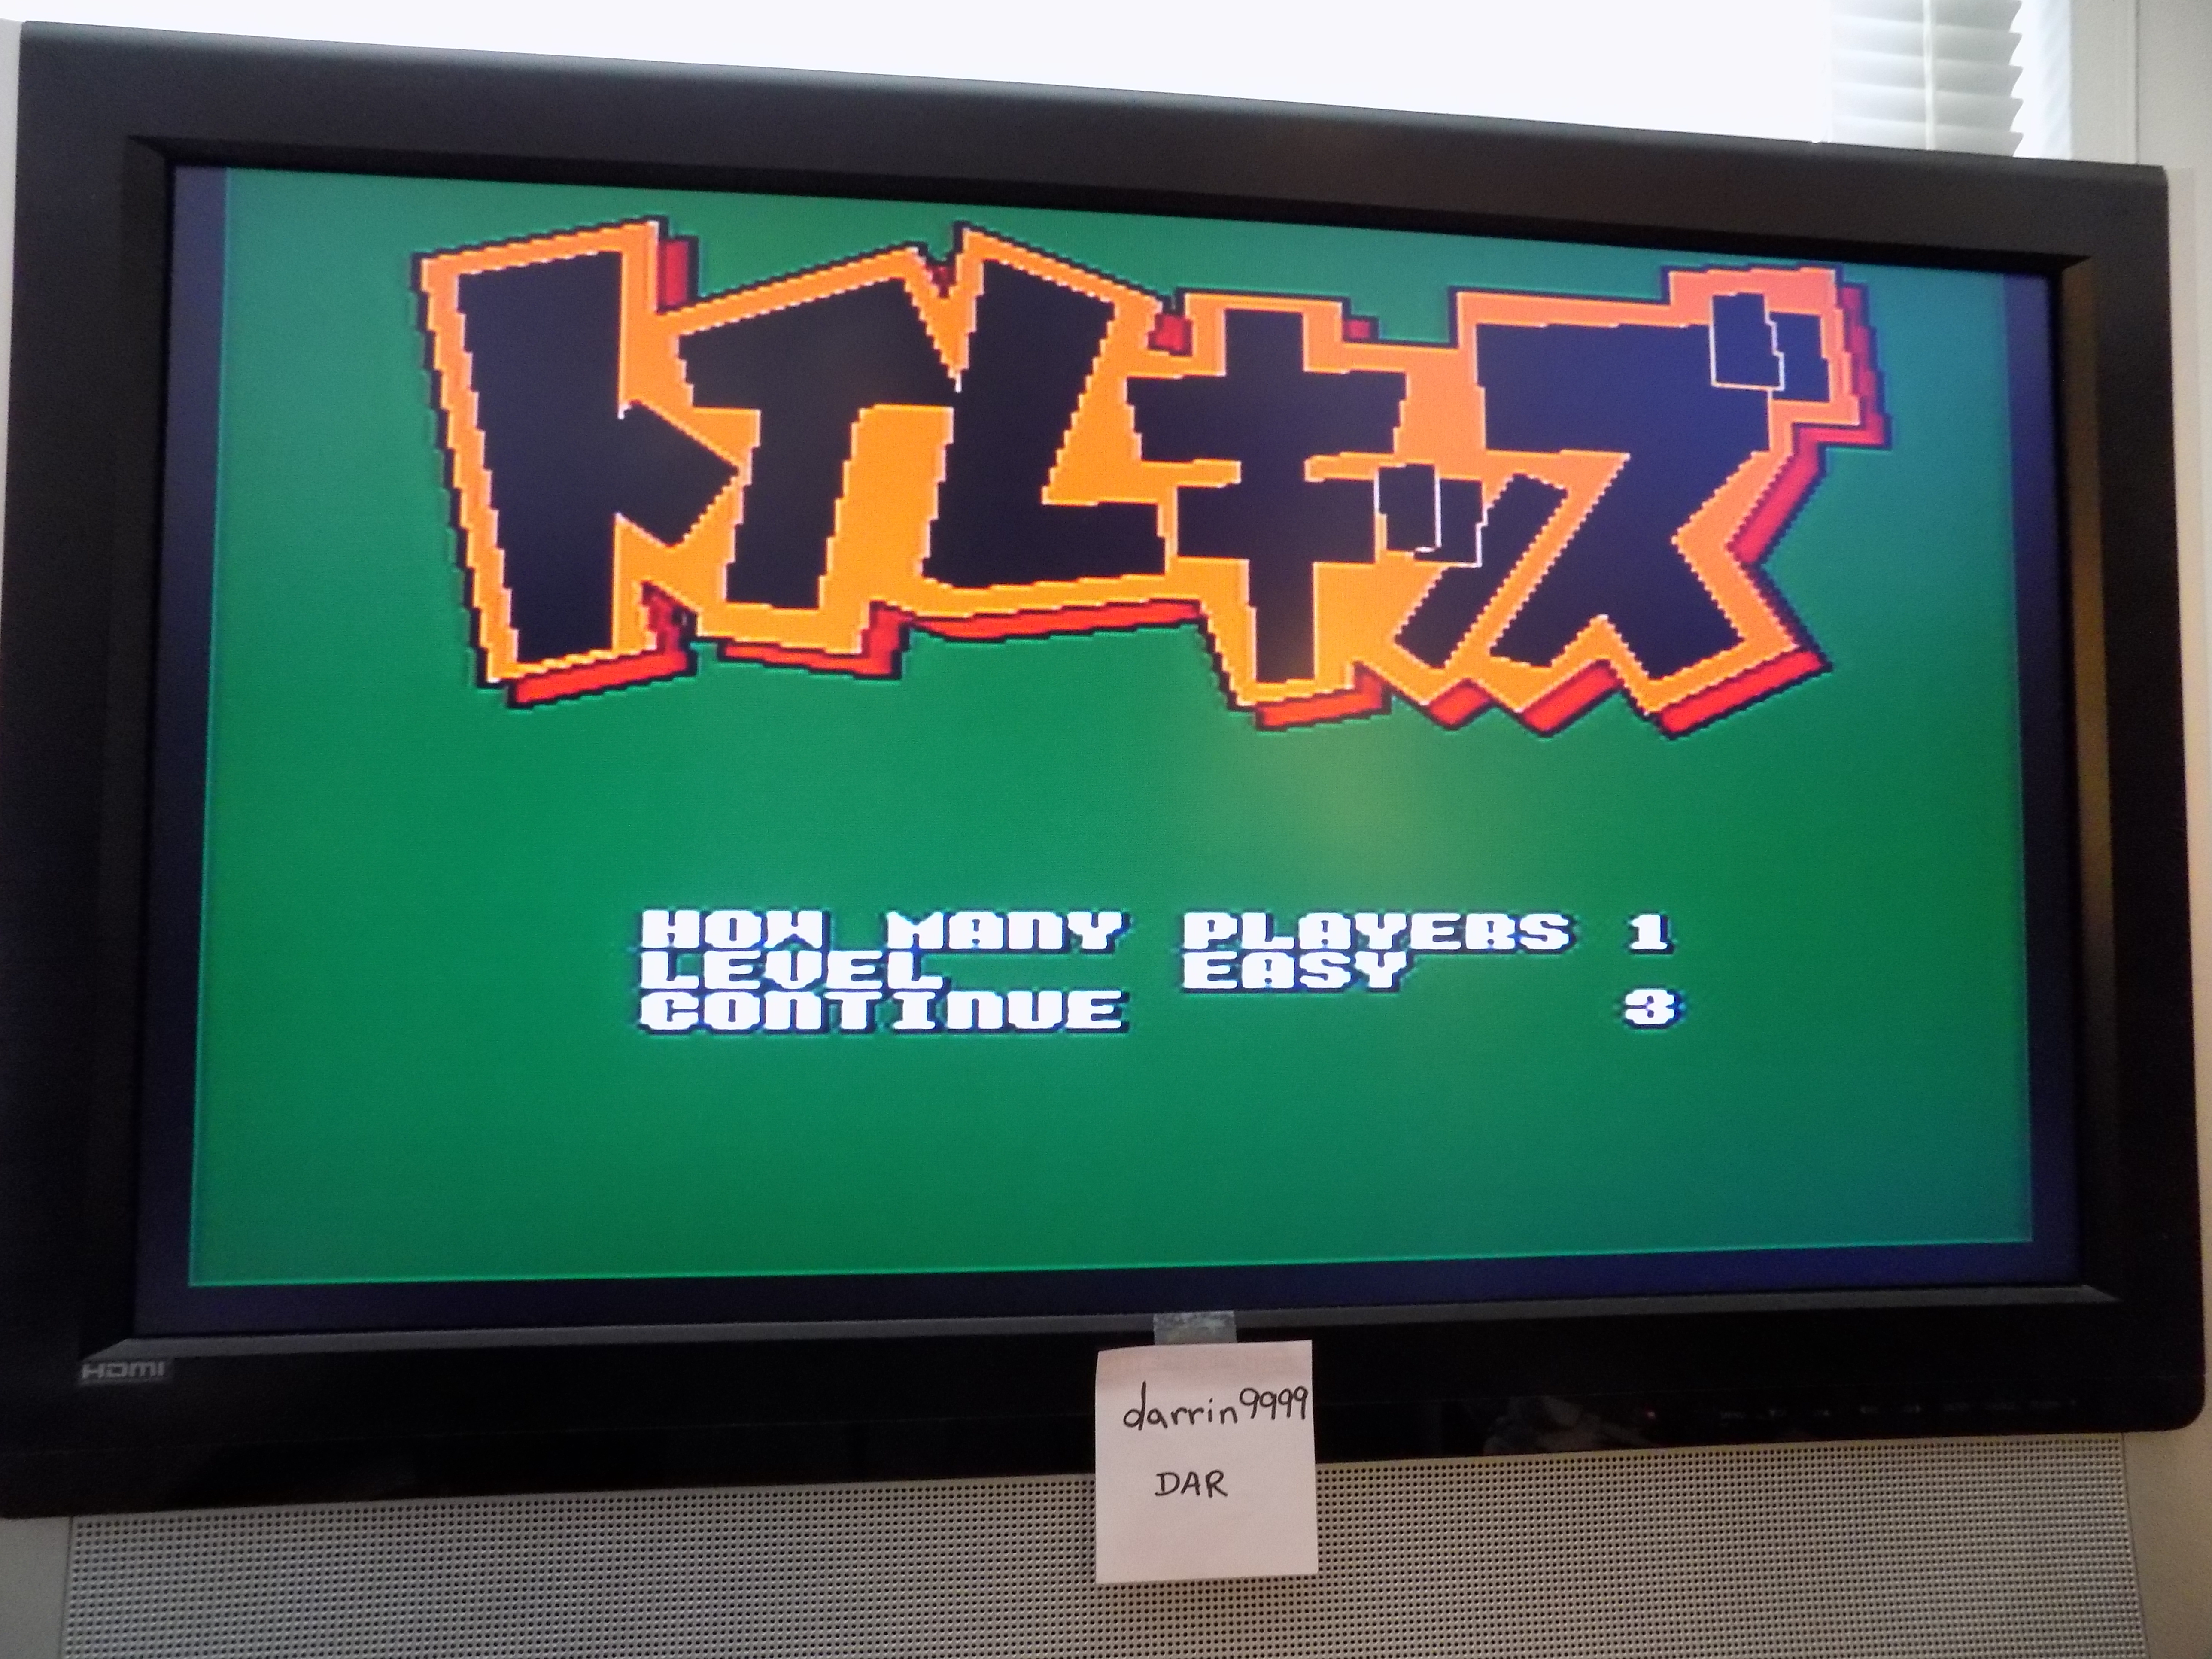 darrin9999: Toilet Kids [Easy] (TurboGrafx-16/PC Engine) 41,300 points on 2017-06-08 12:27:28